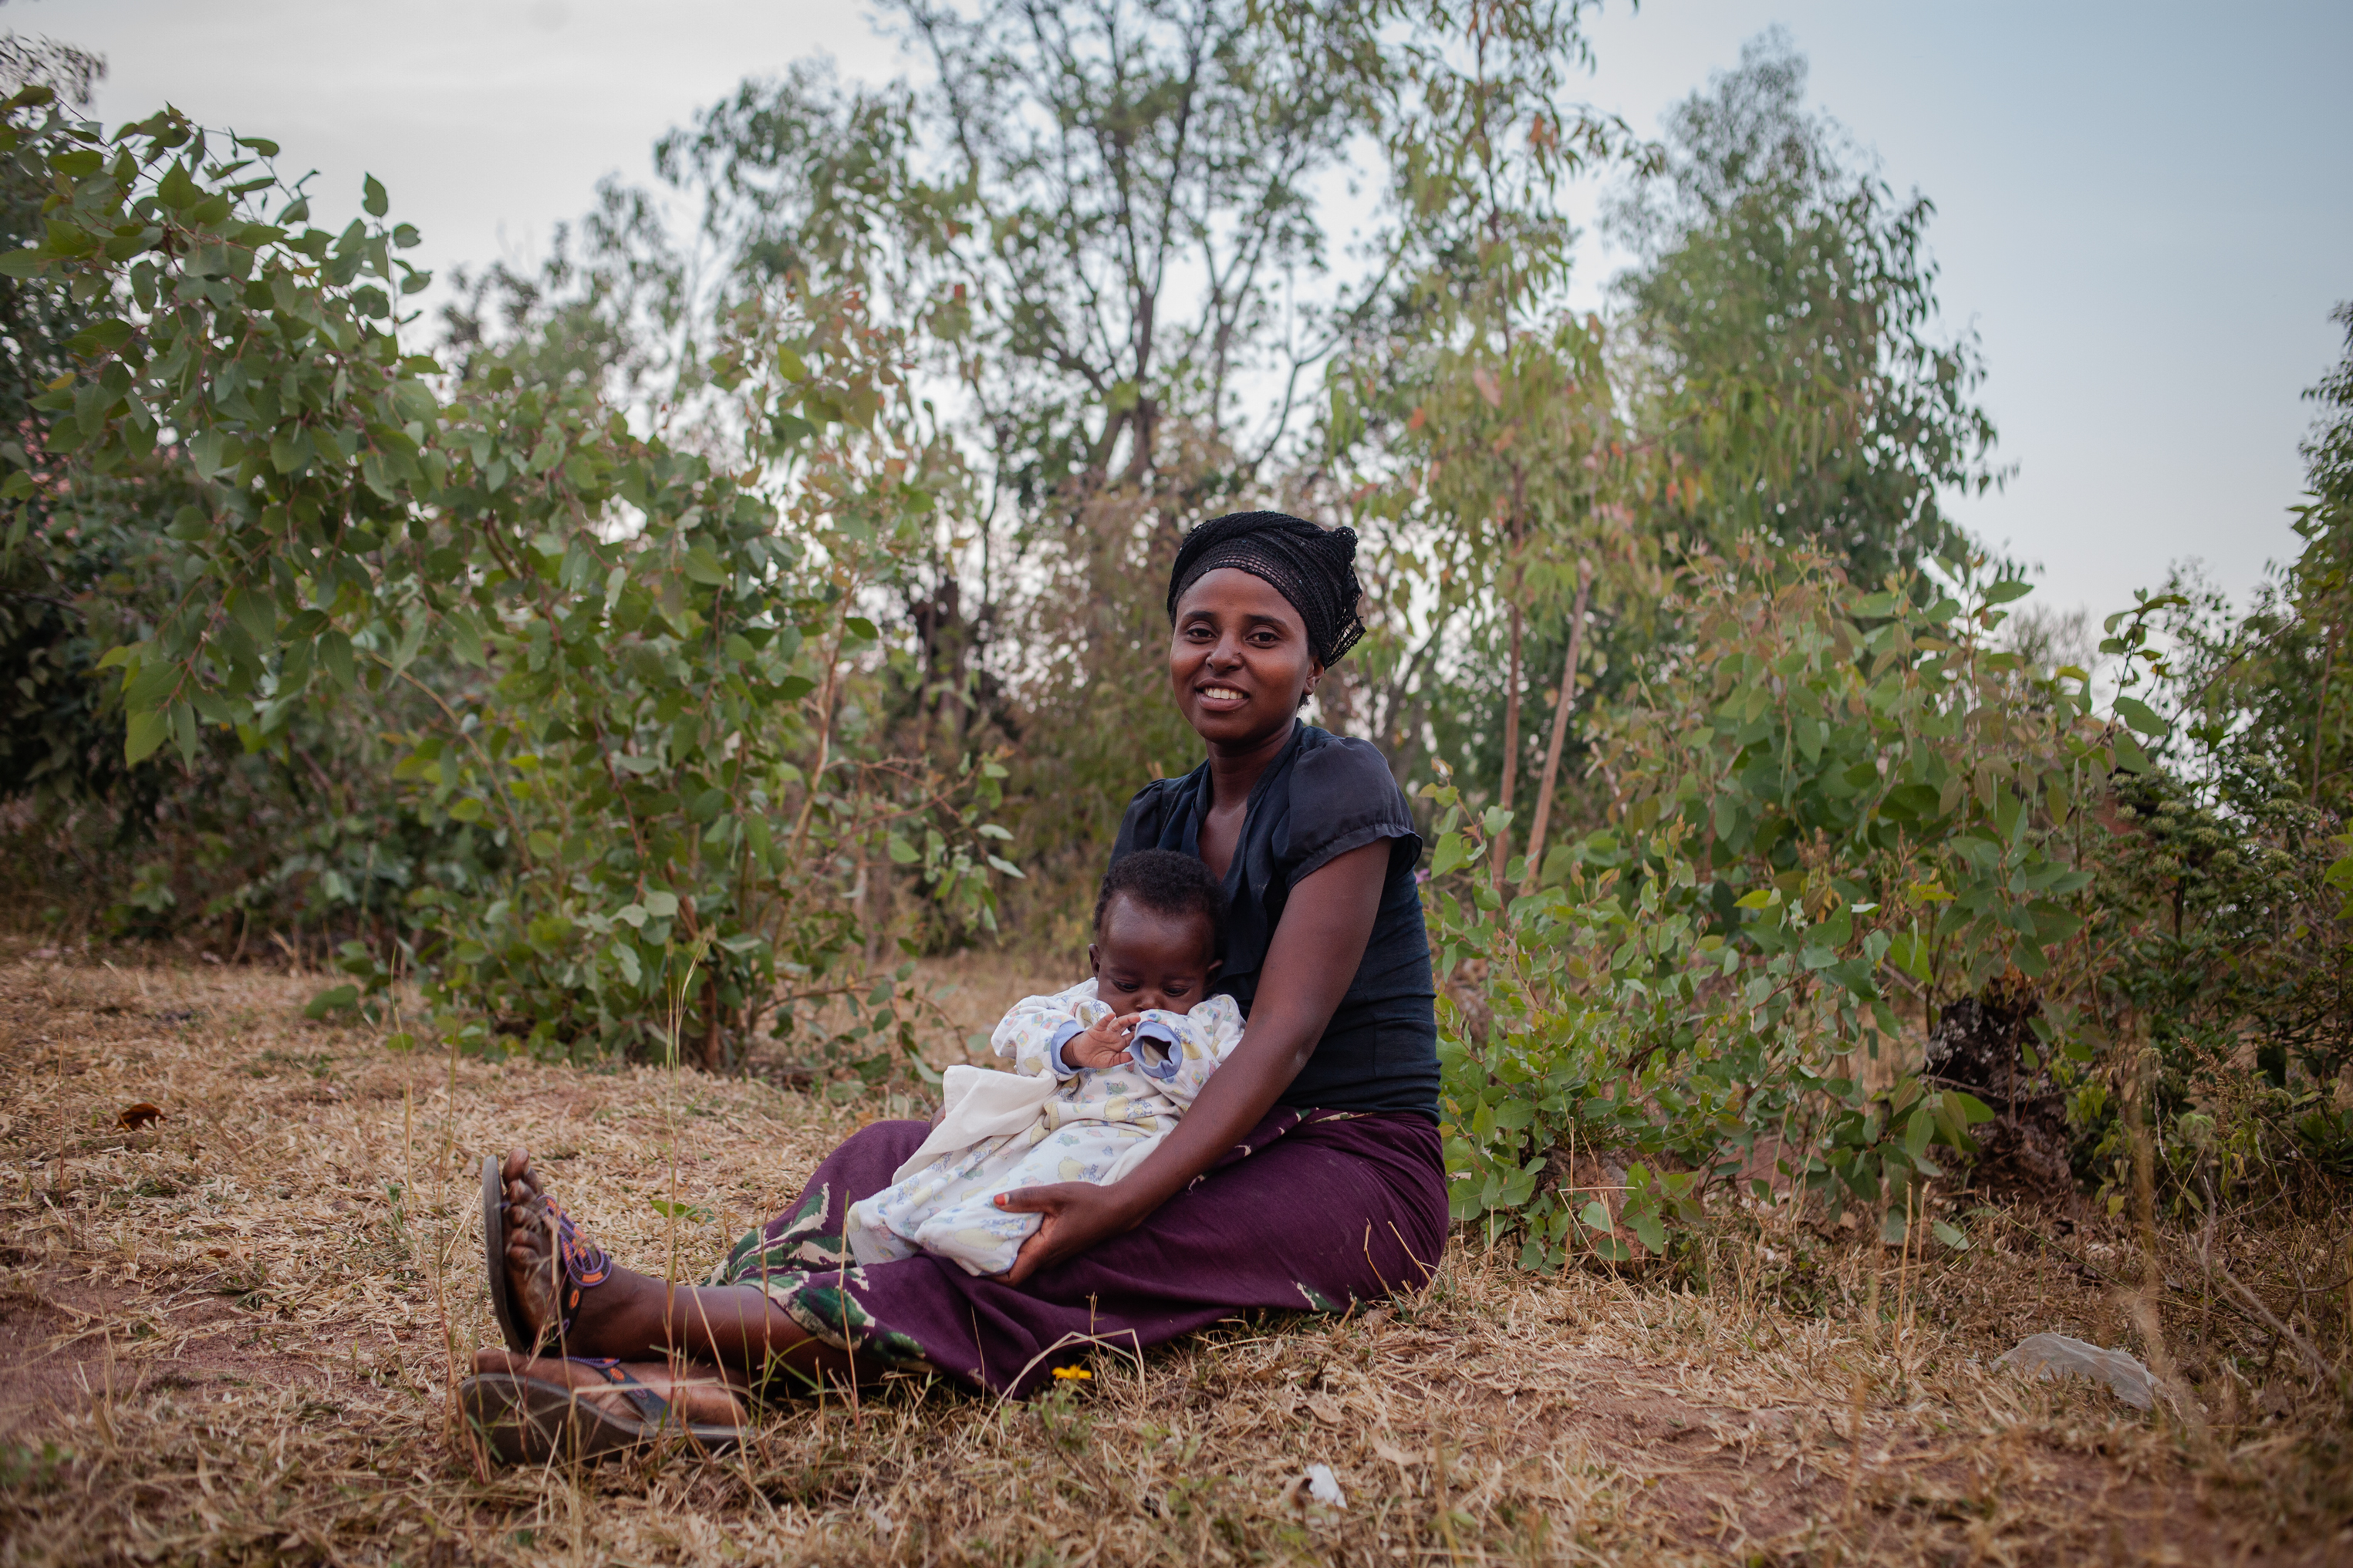 Claudine Ndashimye, 26, with her baby Rabertin. She received blood from Zipline after having complications with her pregnancy.